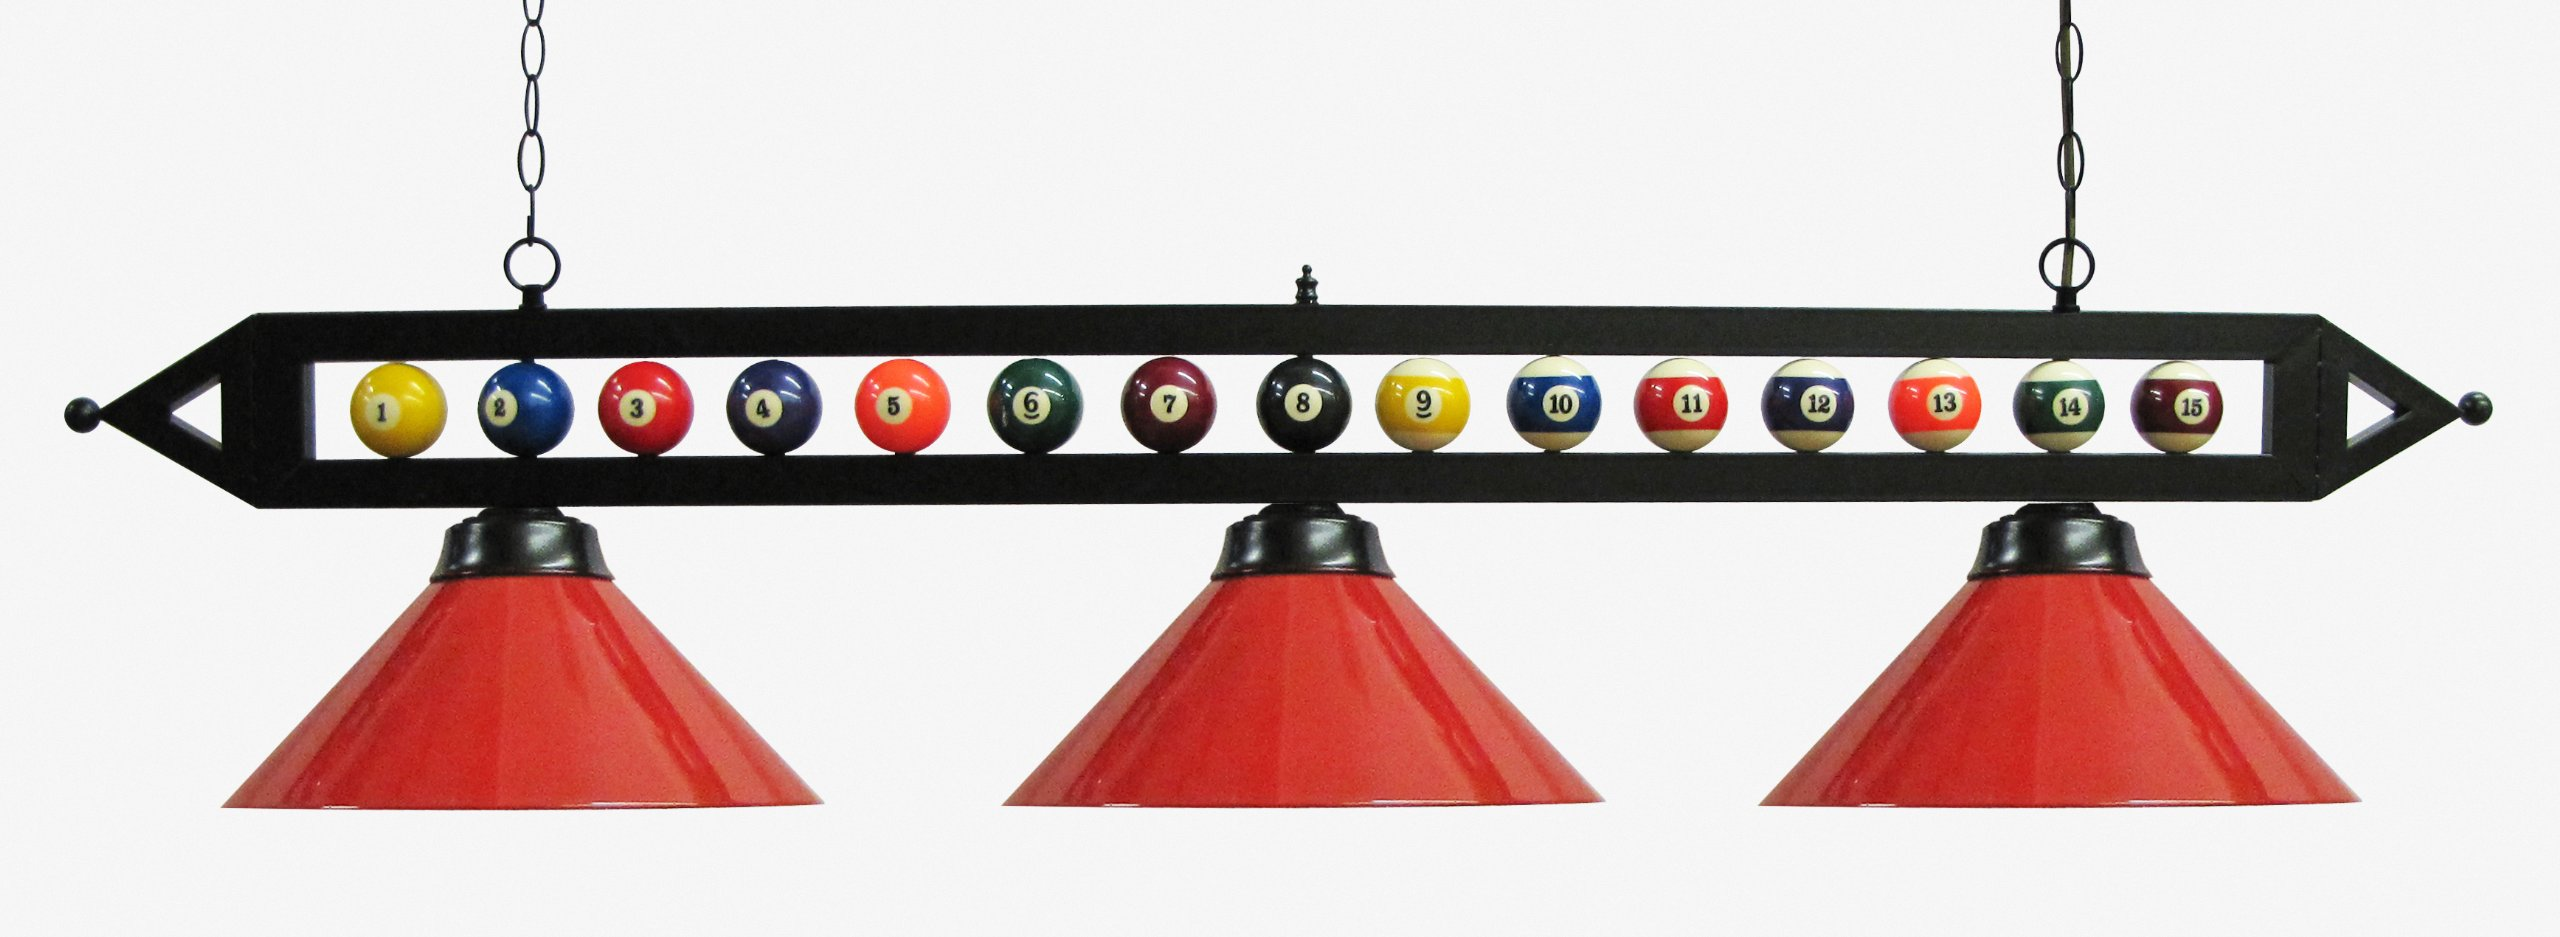 59'' Black Metal Ball Design Pool Table Light Billiard Lamp Choose Black, Red, Green Metal Shades or White Glass (Red Metal Shades)